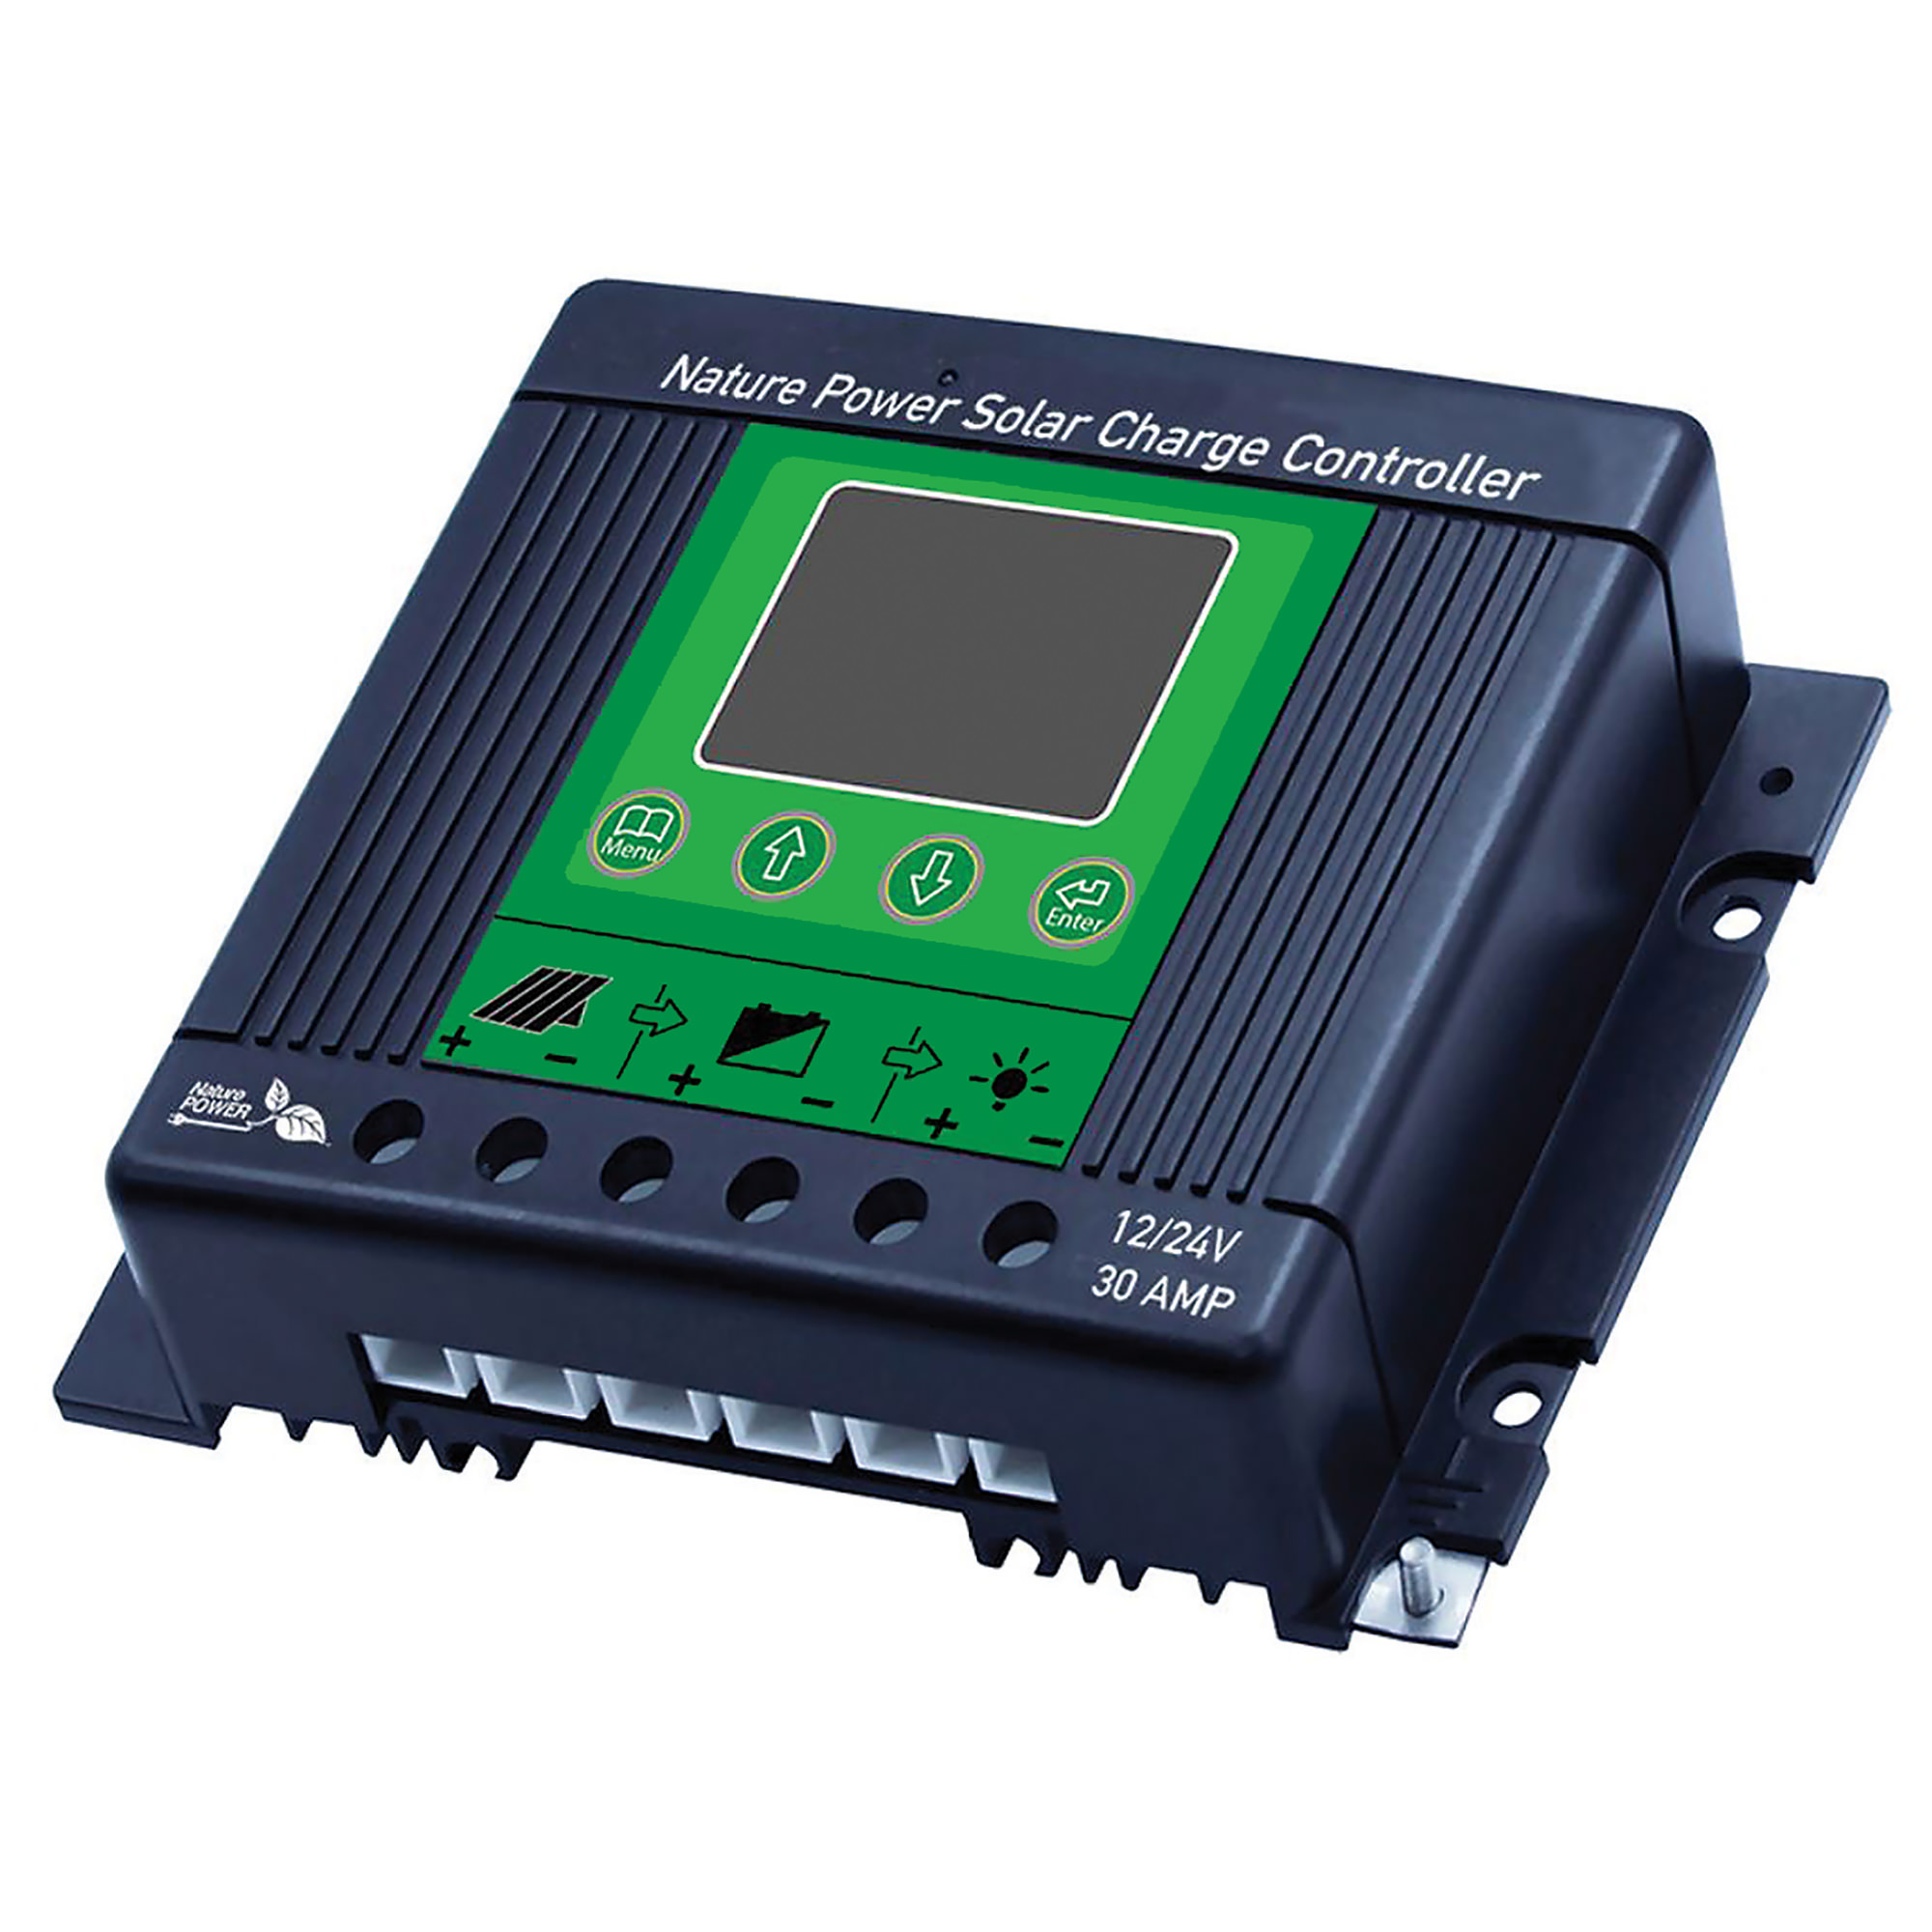 Nature Power 30 Amp Solar Charge Controller Rdk Products 60032 Chargers Controllers Camping World